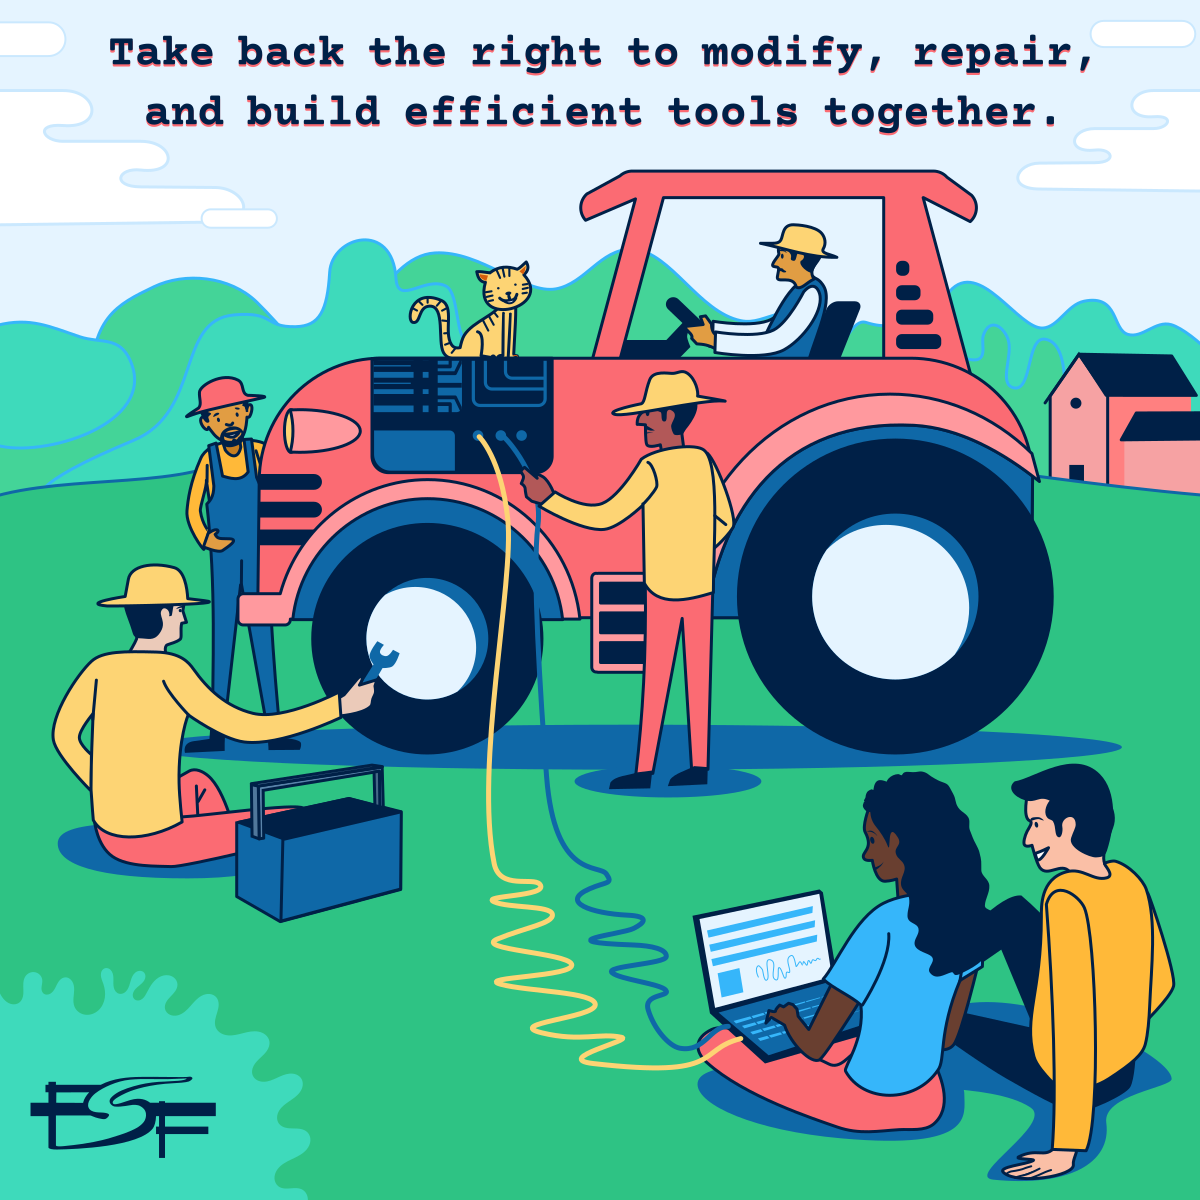 Illustration of people working on a tractor together